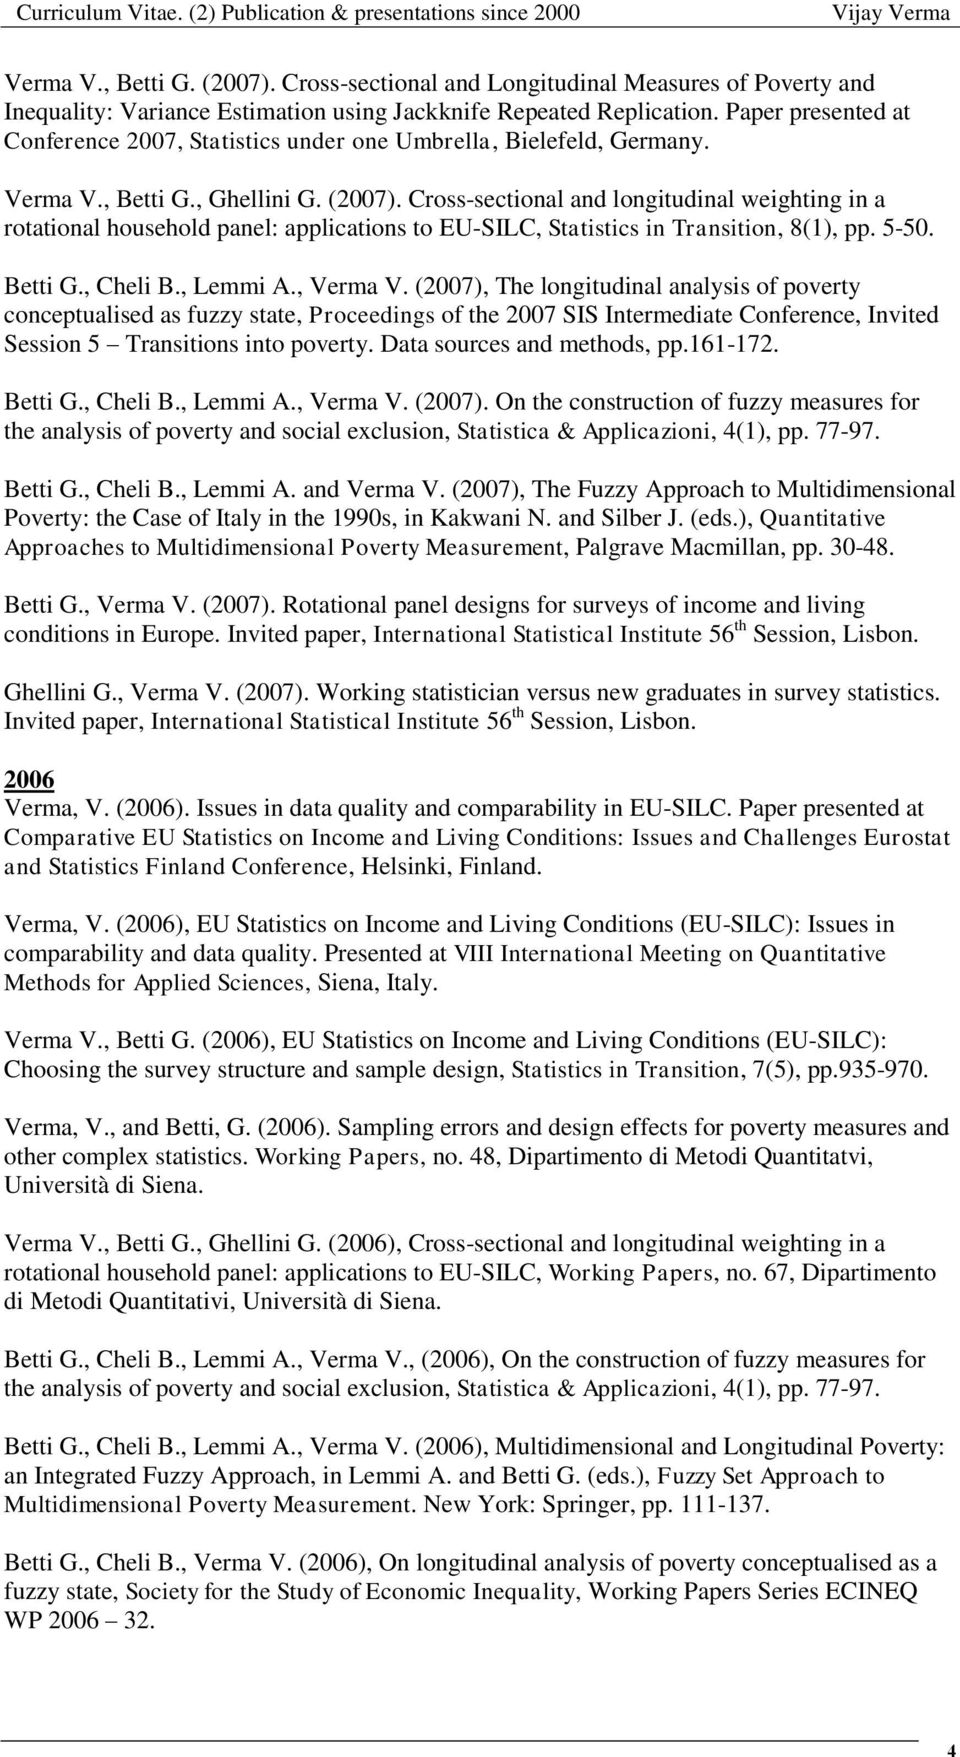 Cross-sectional and longitudinal weighting in a rotational household panel: applications to EU-SILC, Statistics in Transition, 8(1), pp. 5-50. Betti G., Cheli B., Lemmi A., Verma V.